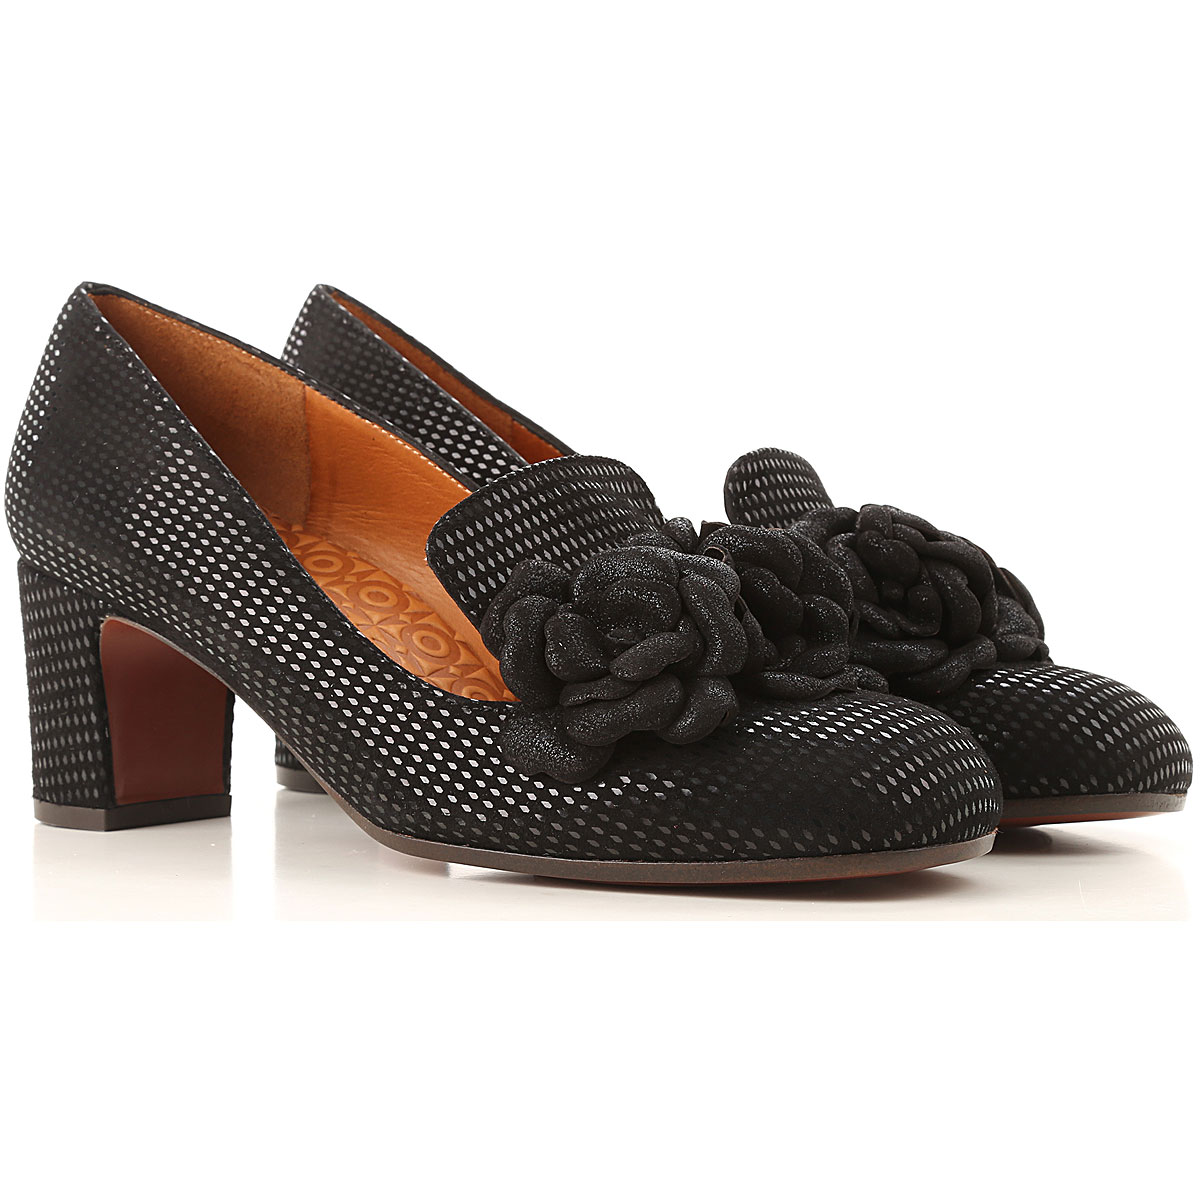 Image of Chie Mihara Pumps & High Heels for Women, Black, Leather, 2017, 10 6 7 8 9